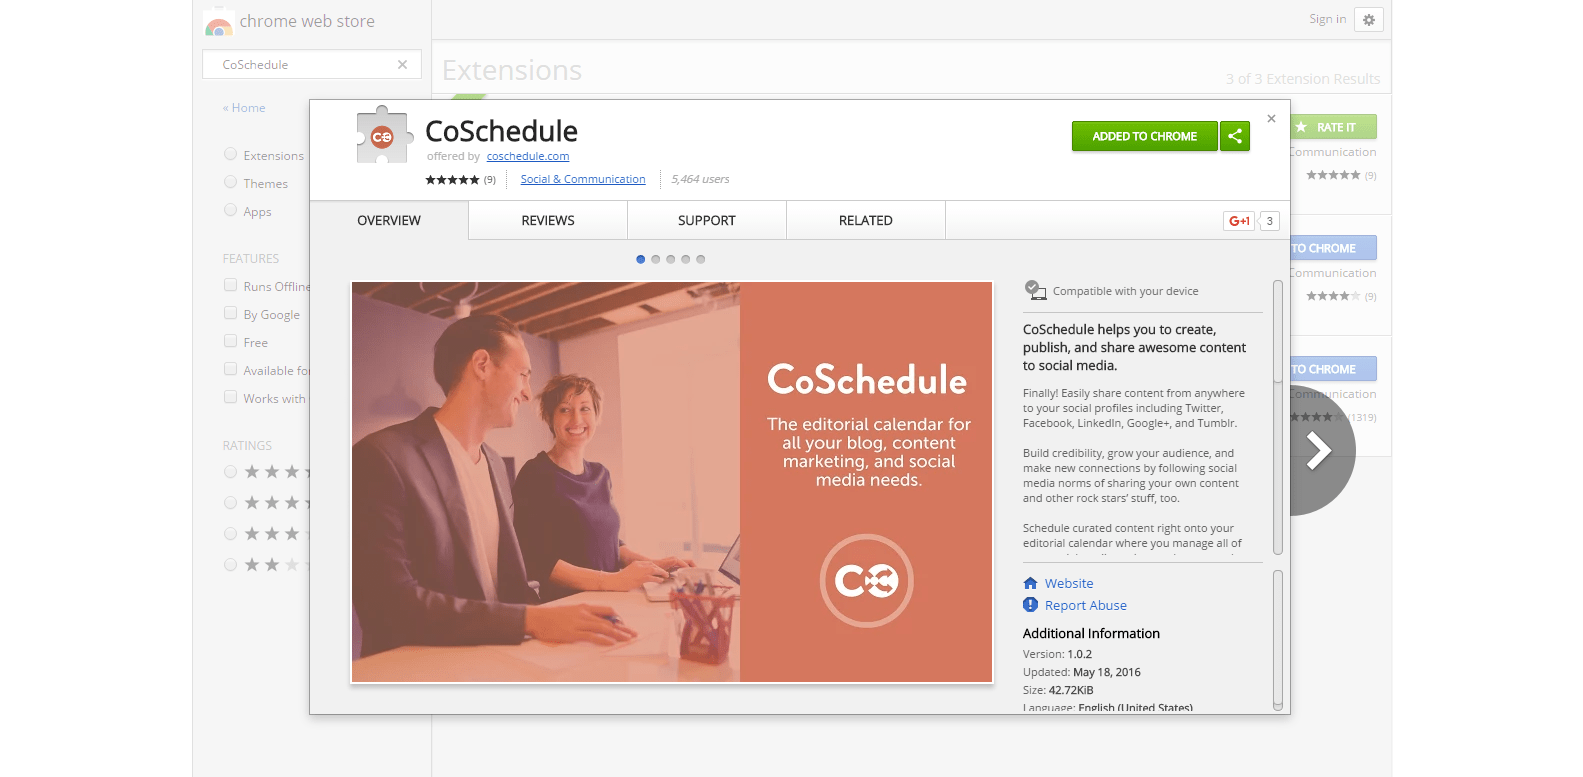 coschedule-chrome-web-store